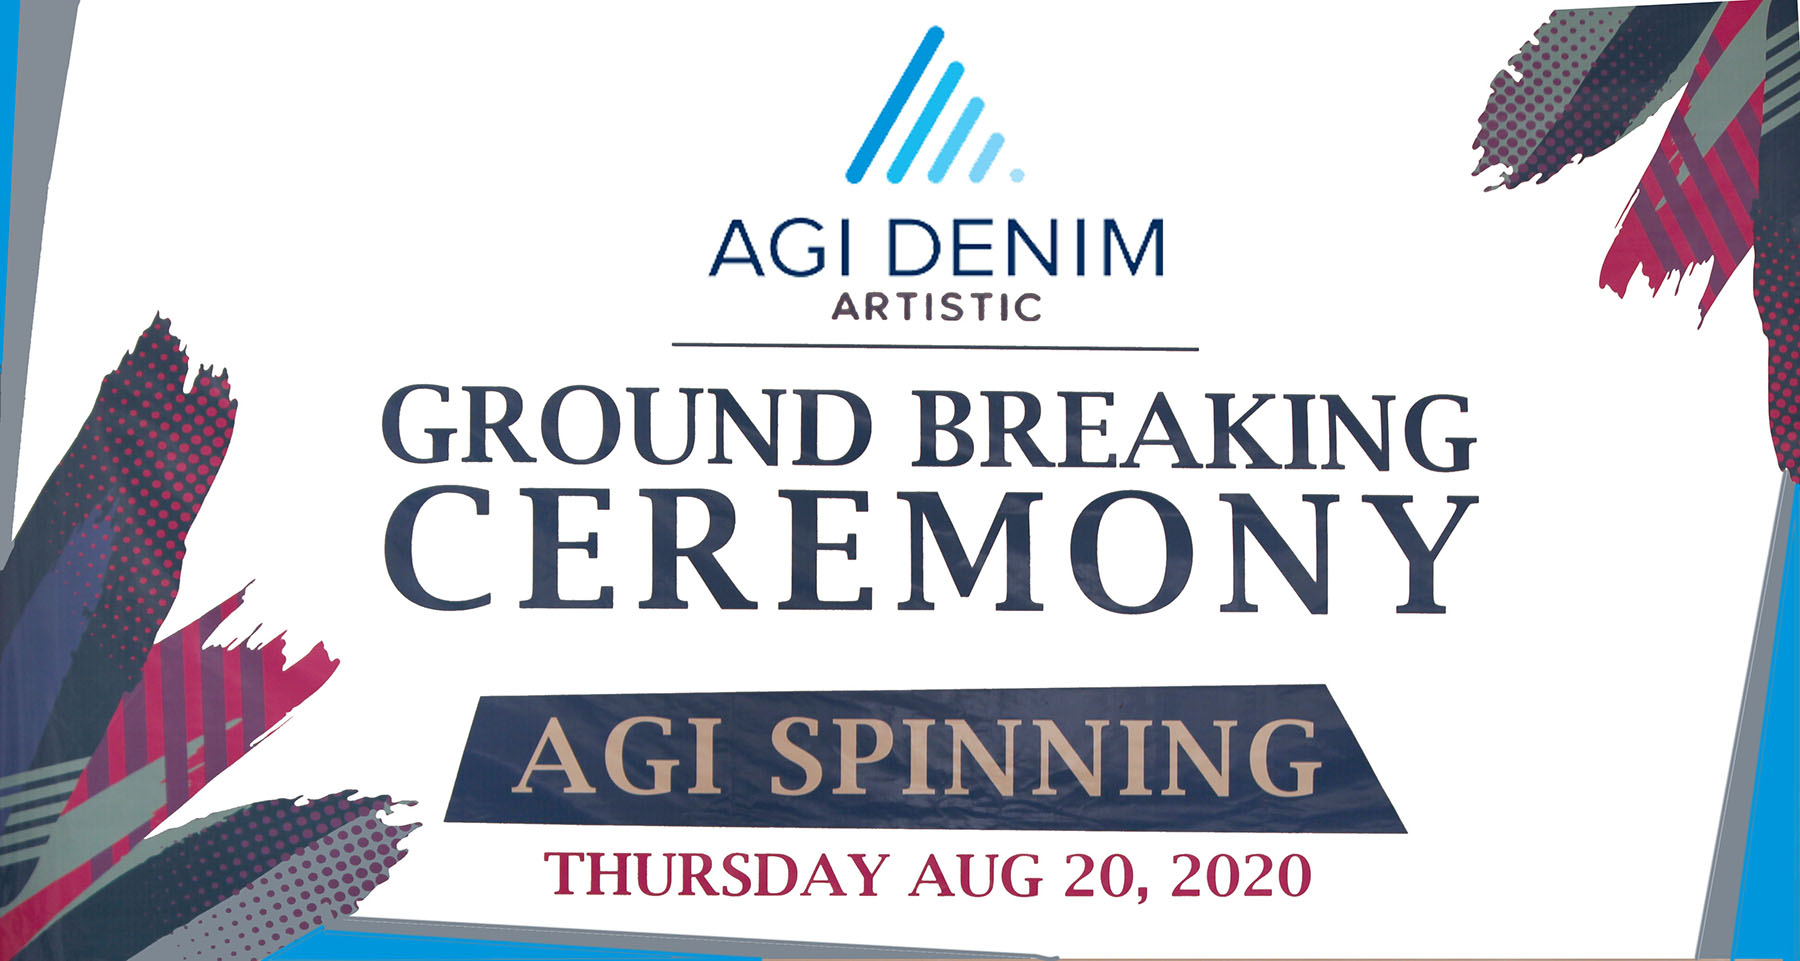 AGI Denim Artistic - Spinning Unit